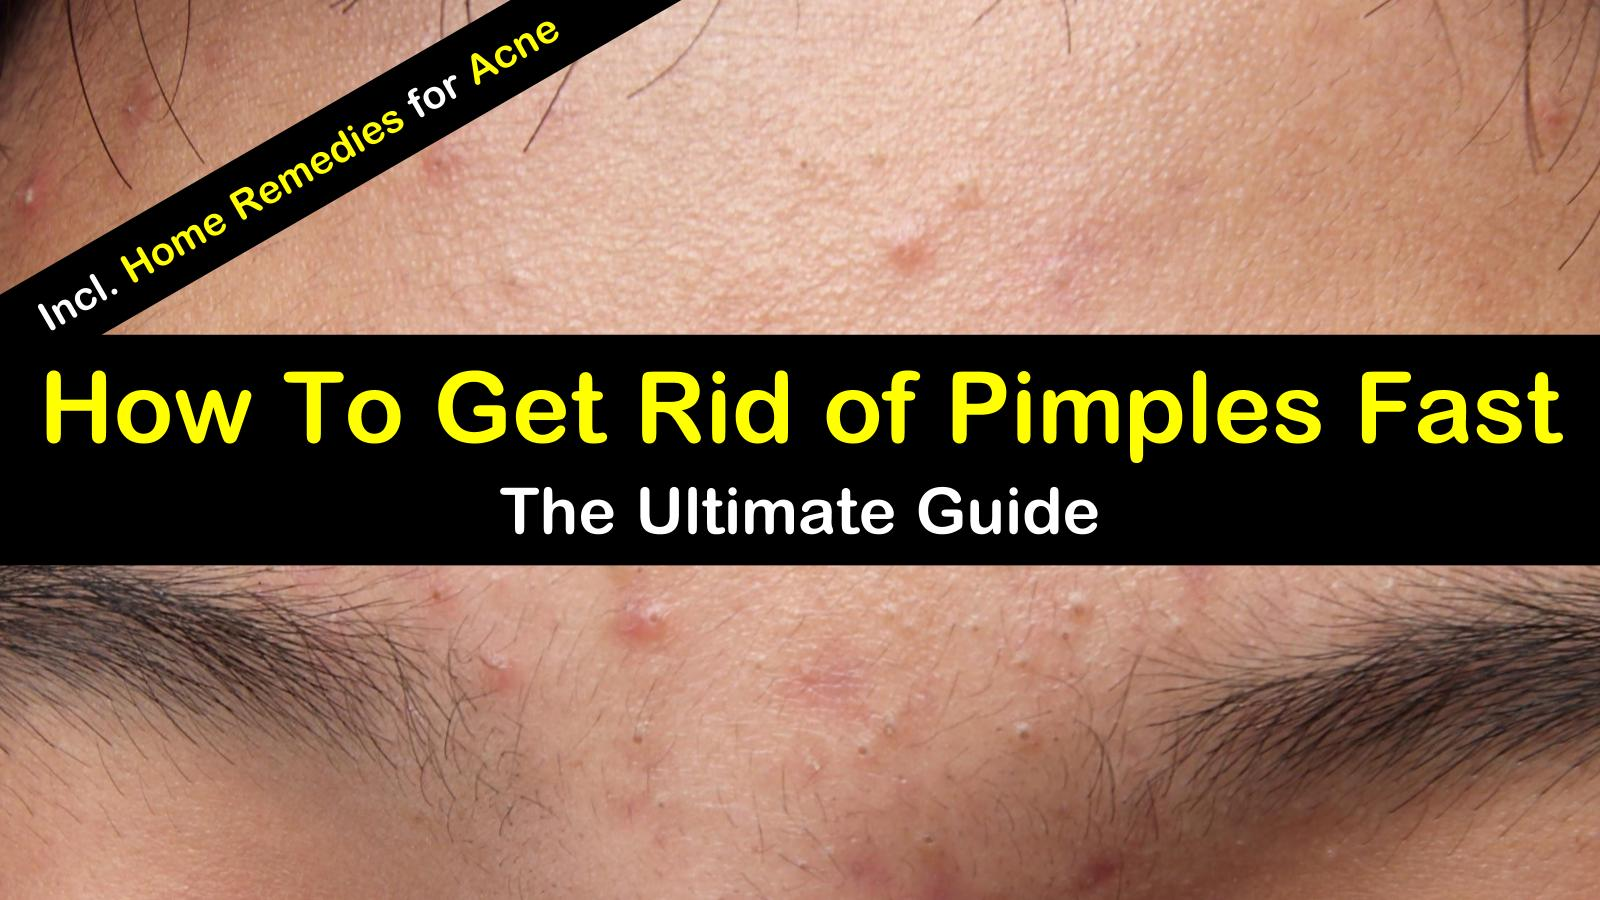 How to make pimple cuts heal faster